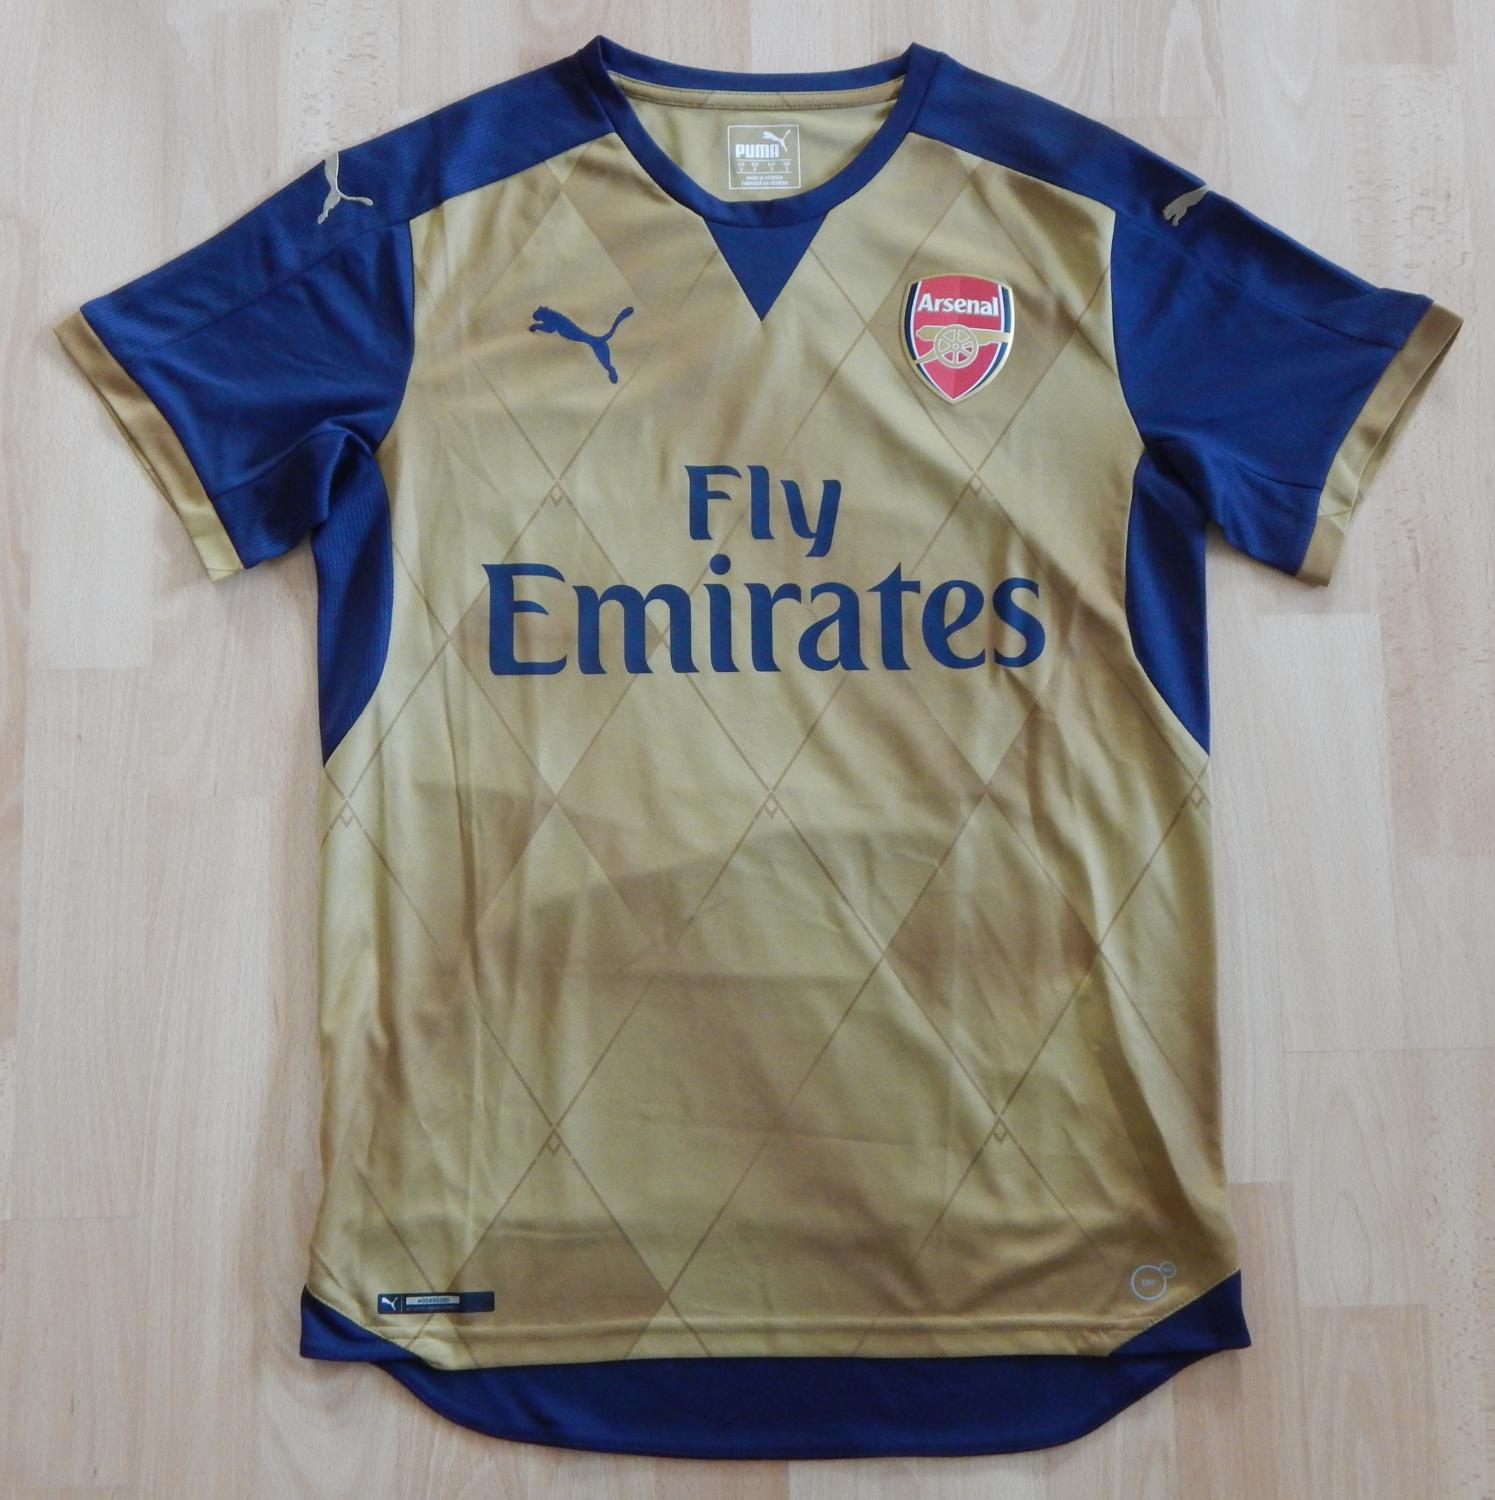 c61443df Arsenal Away Maillot de foot 2015 - 2016. Sponsored by Emirates